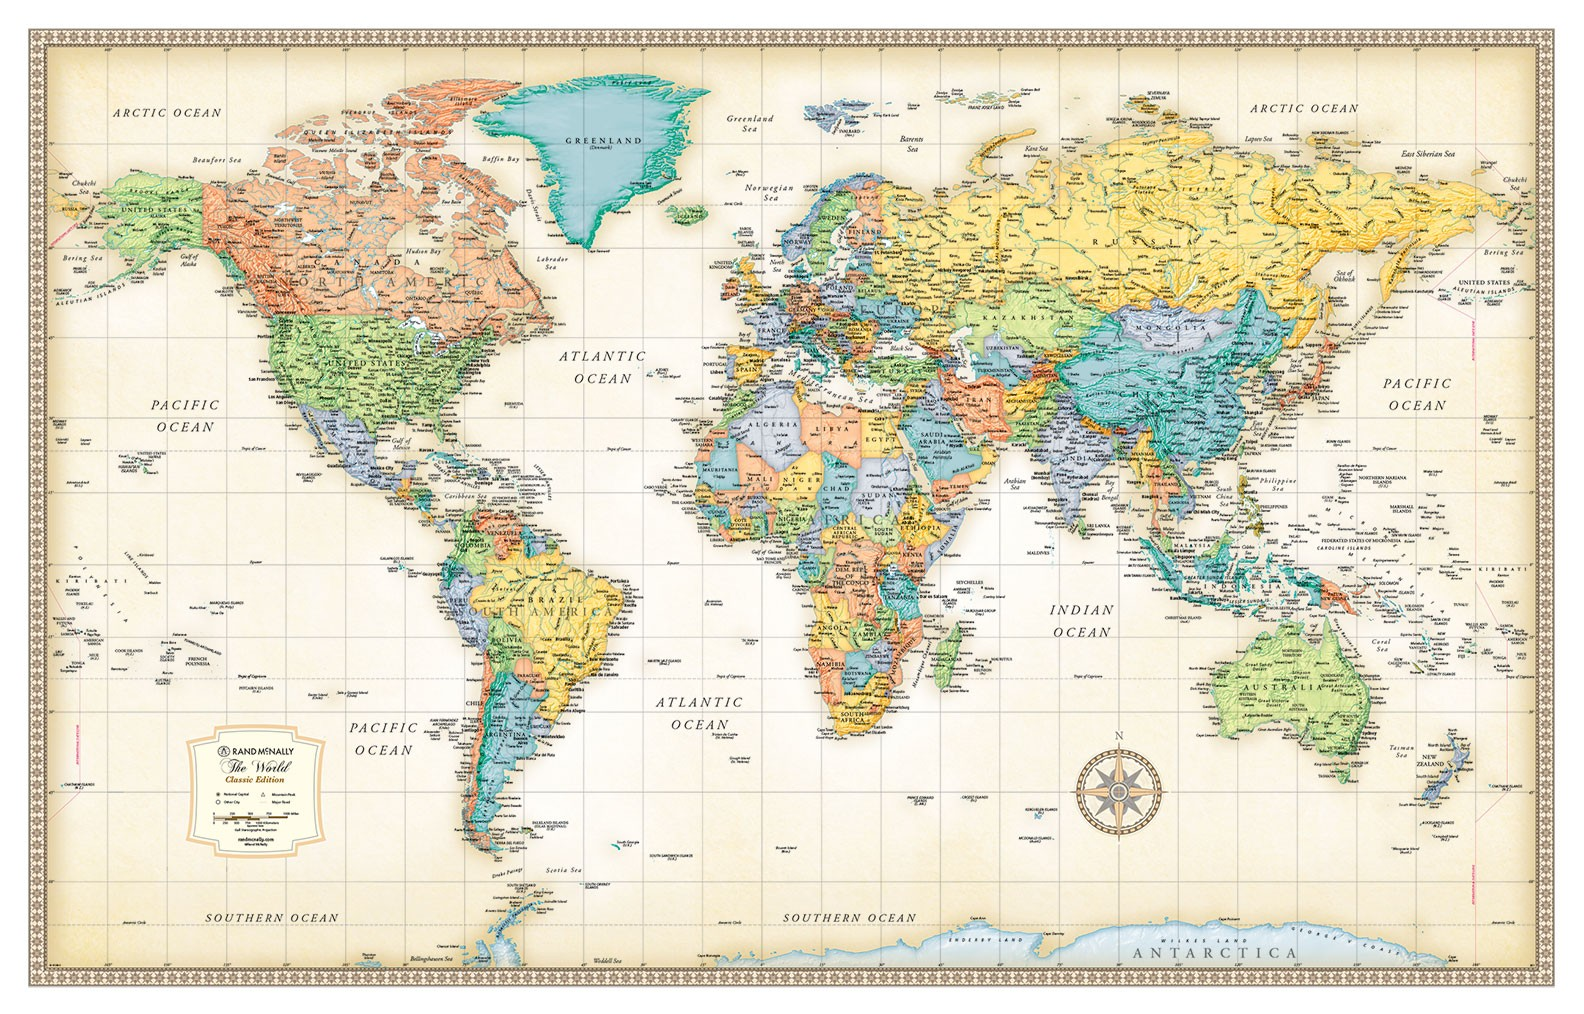 Rand McNally Classic Edition World Wall Map Poster - High quality world map poster